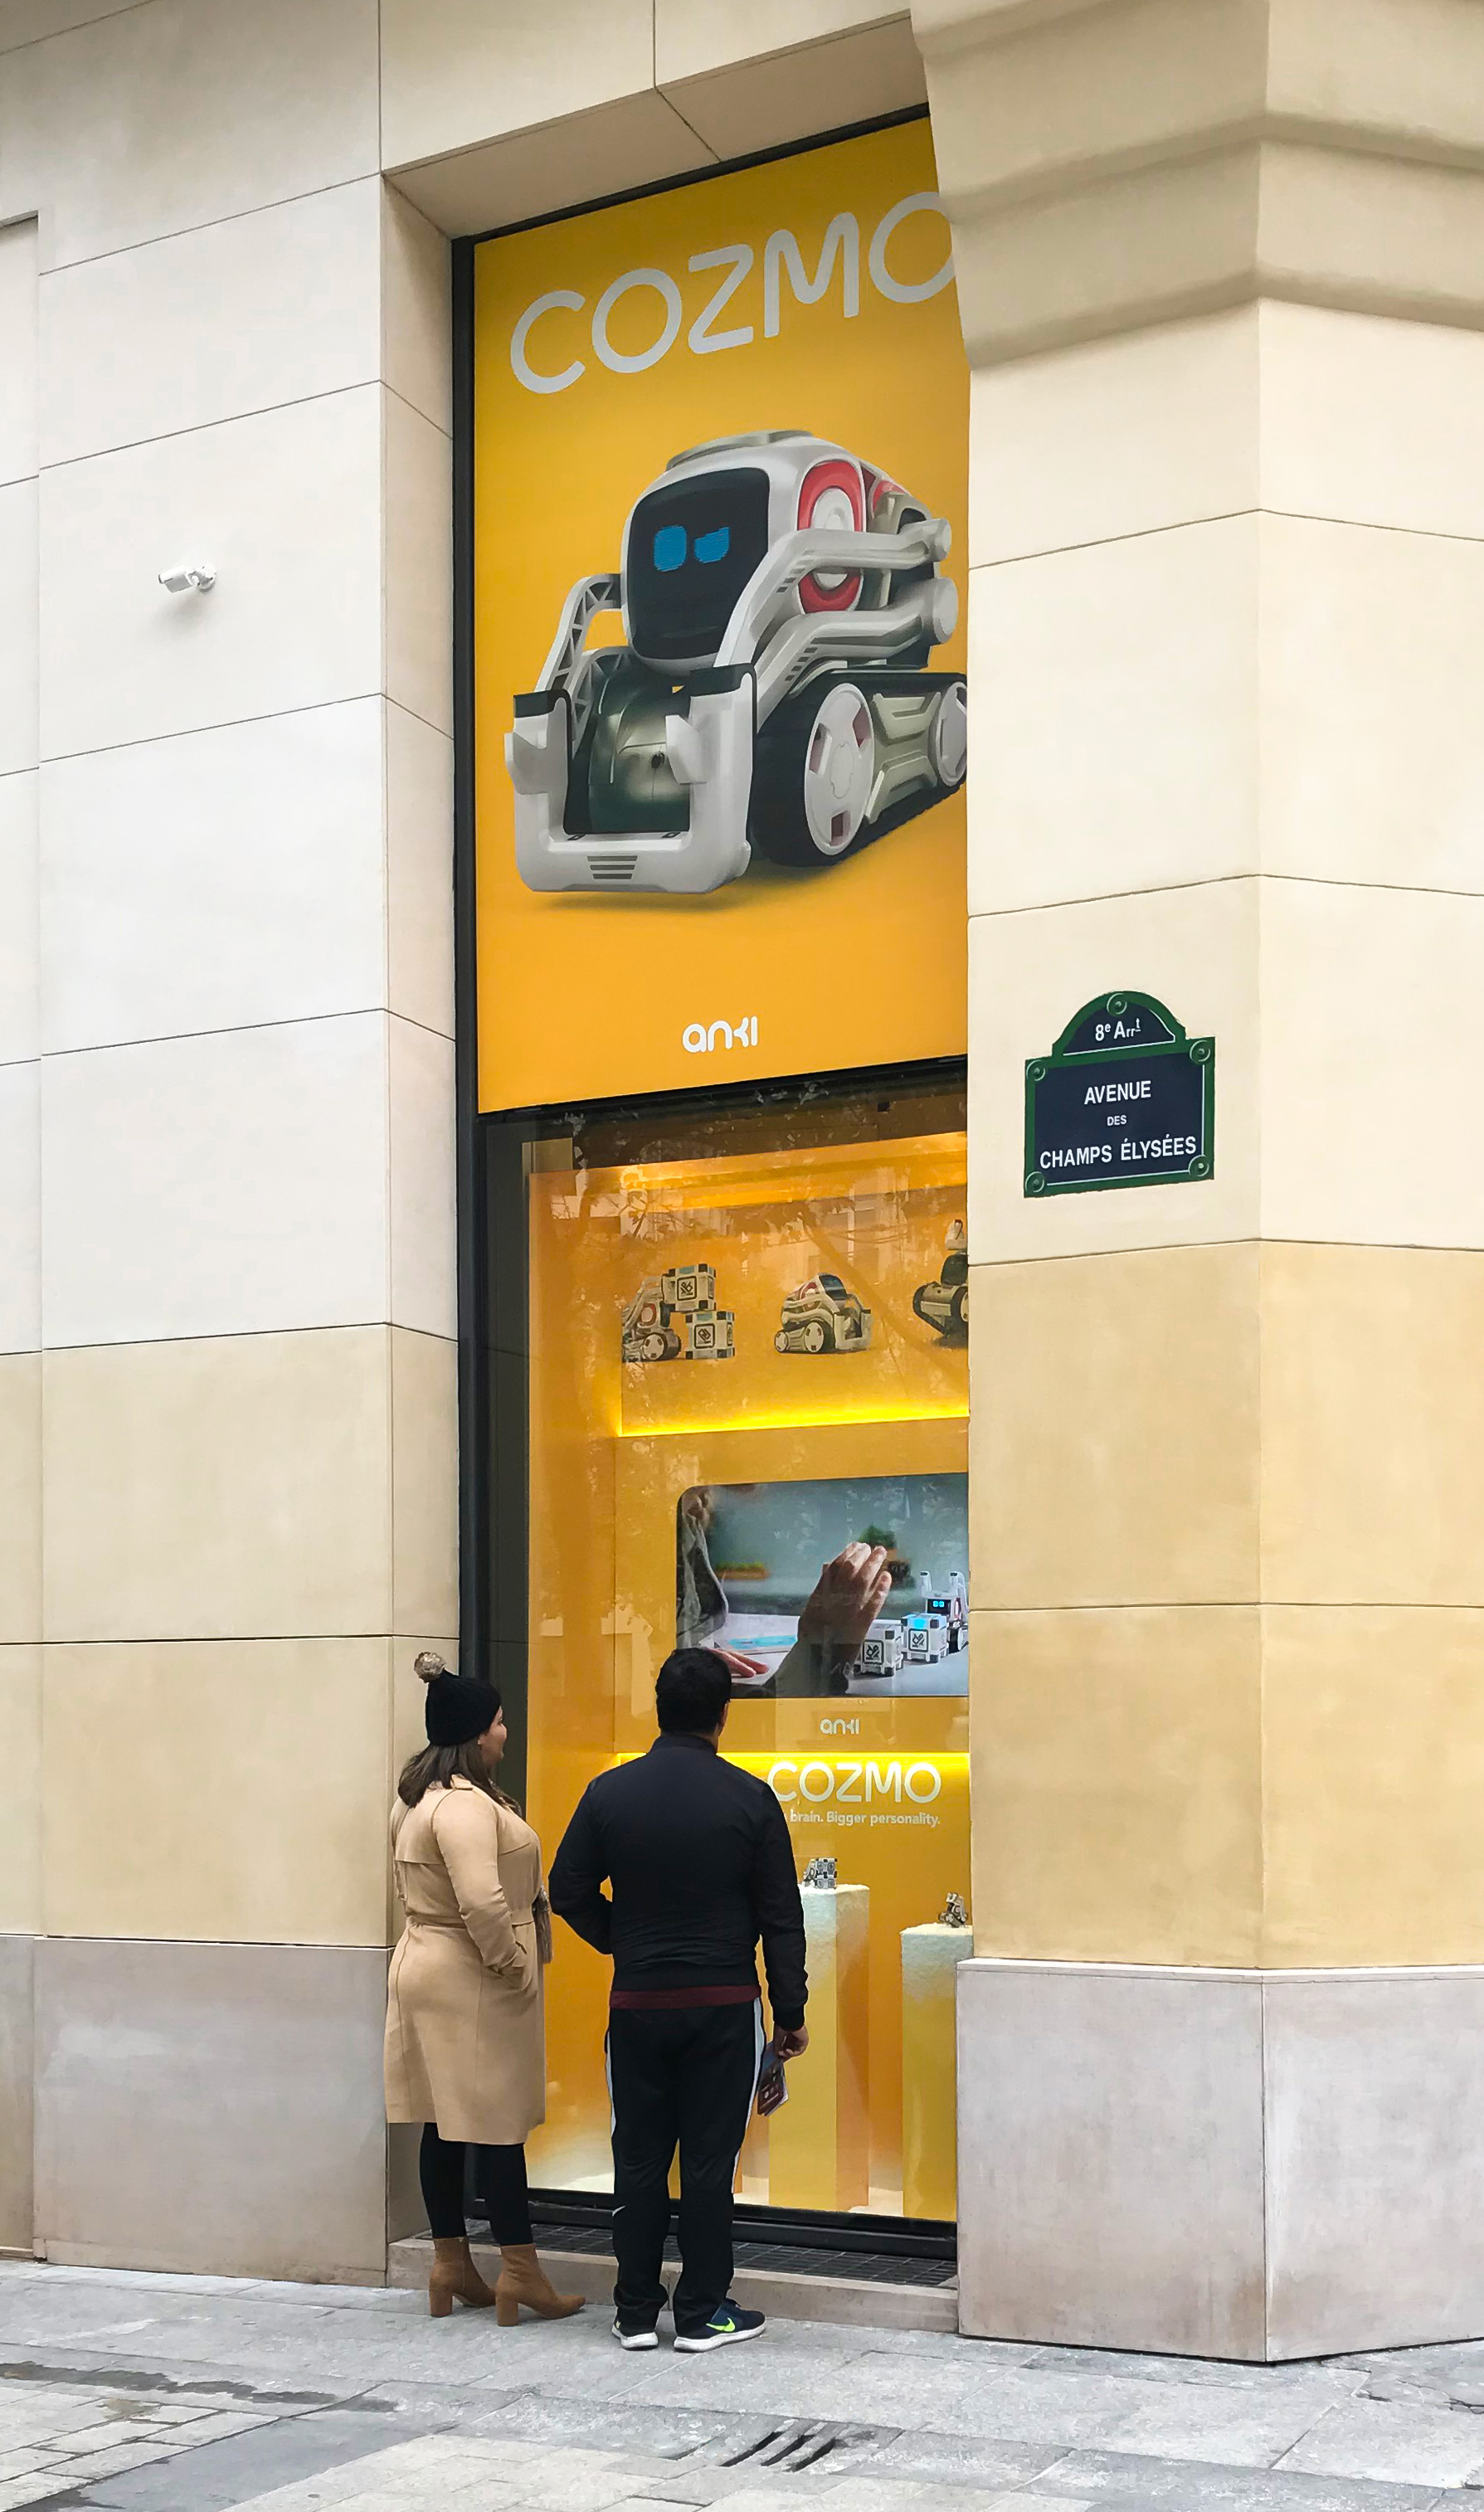 Large scale product display and advertisement for Anki Cozmo robot